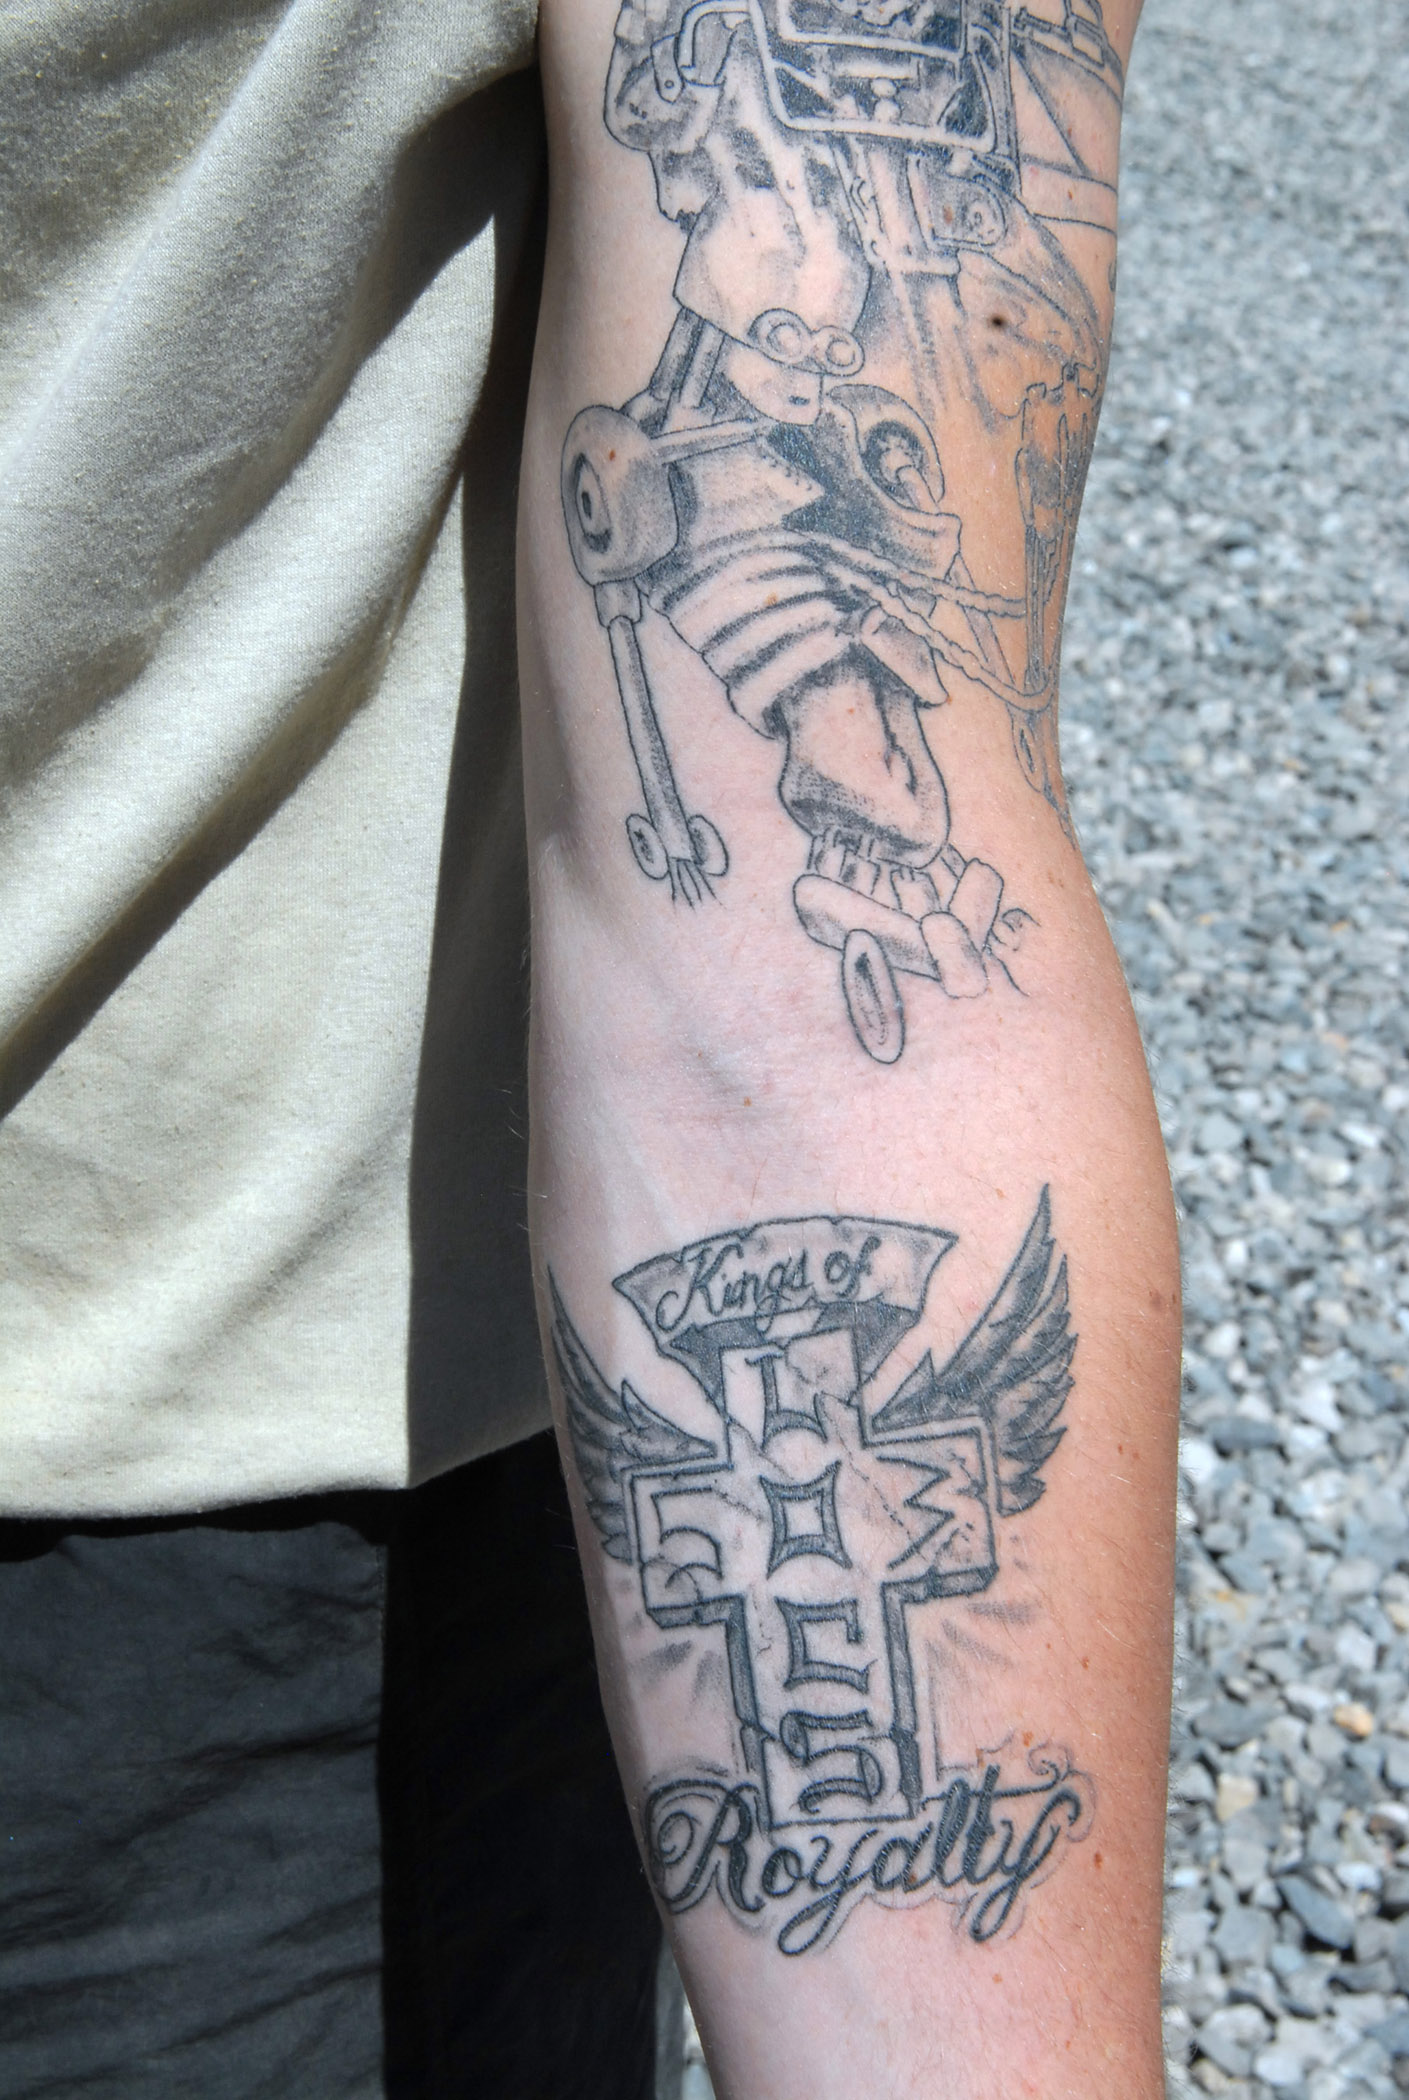 Military army tattoos designs ideas and meaning tattoos for you